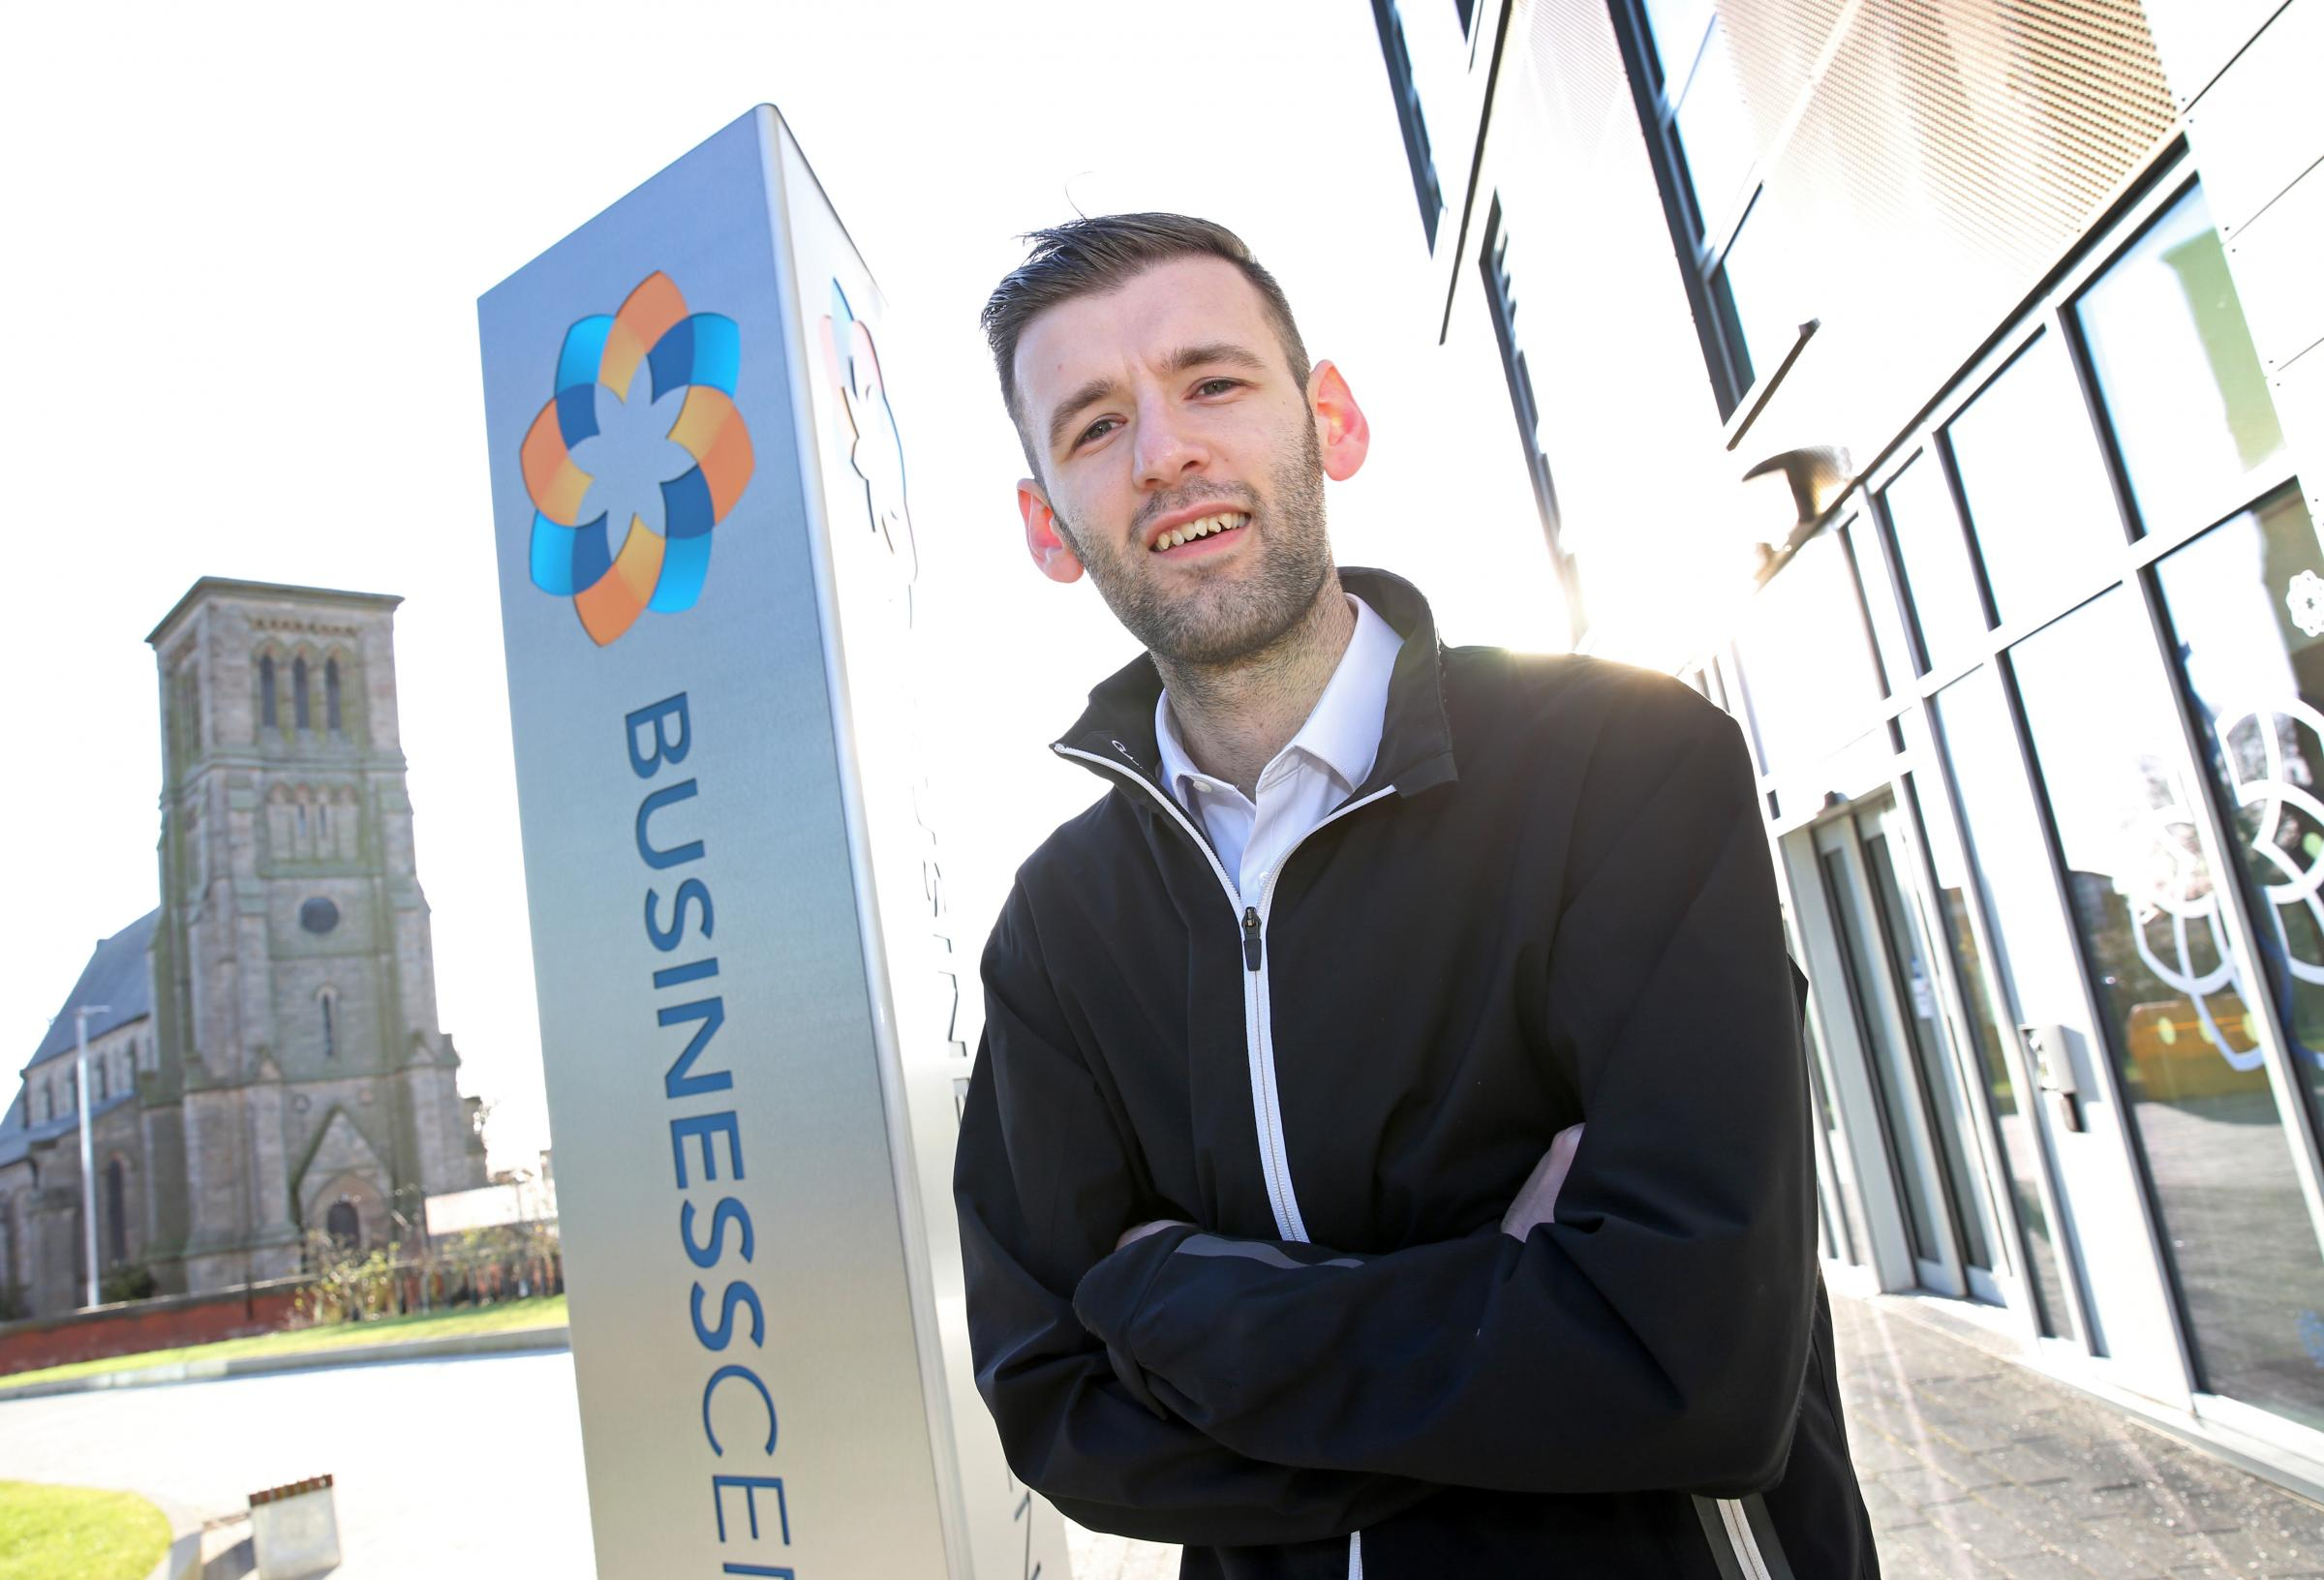 ROLE: Business Central's new operations support assistant Daniel Sanderson